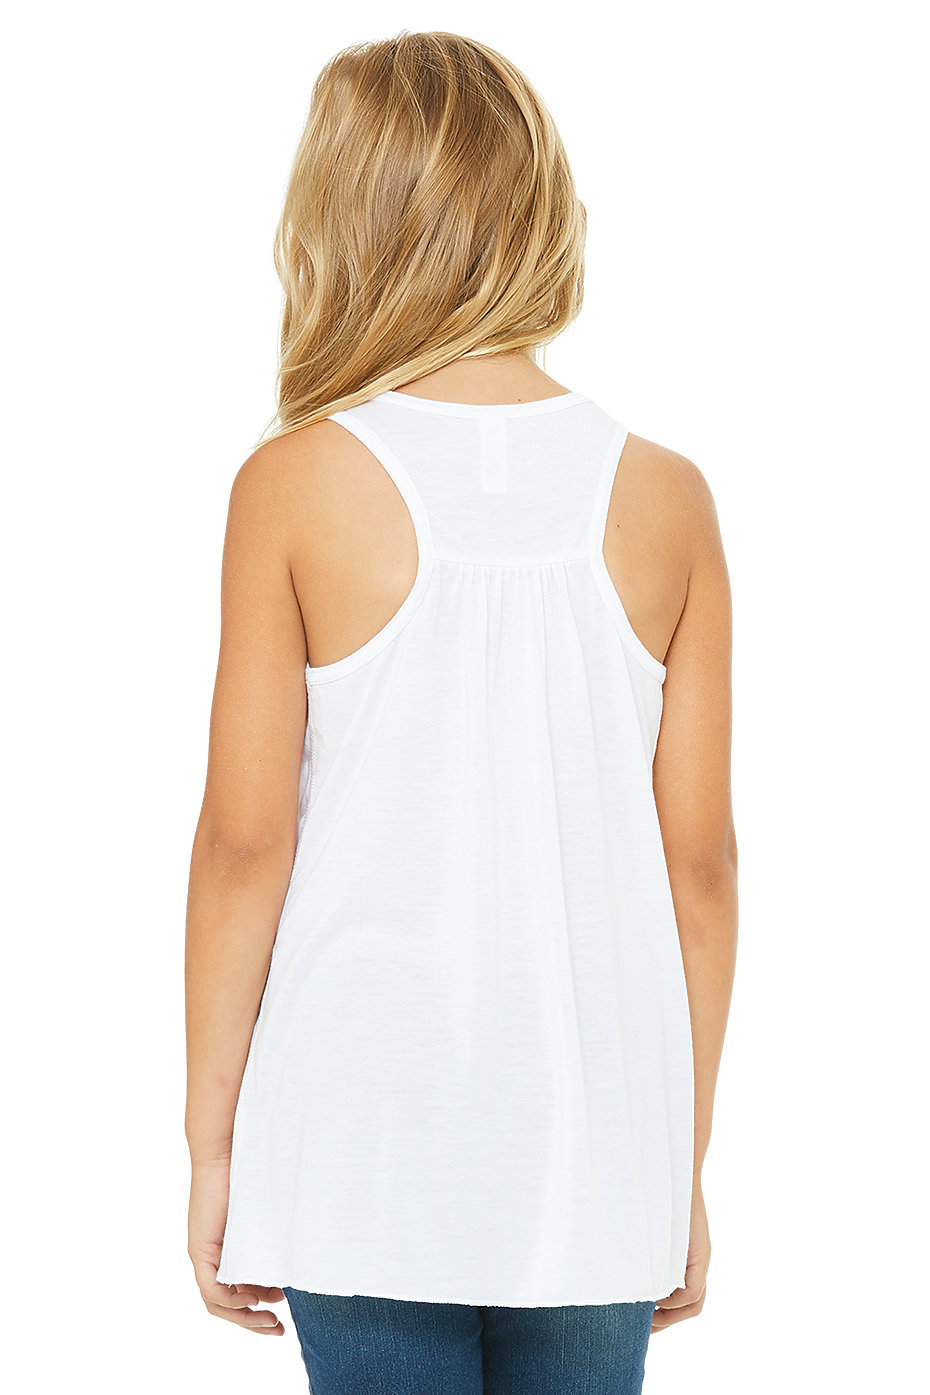 ac67249c40a7d 8800y Youth Flowy Racerback Tank. Previous